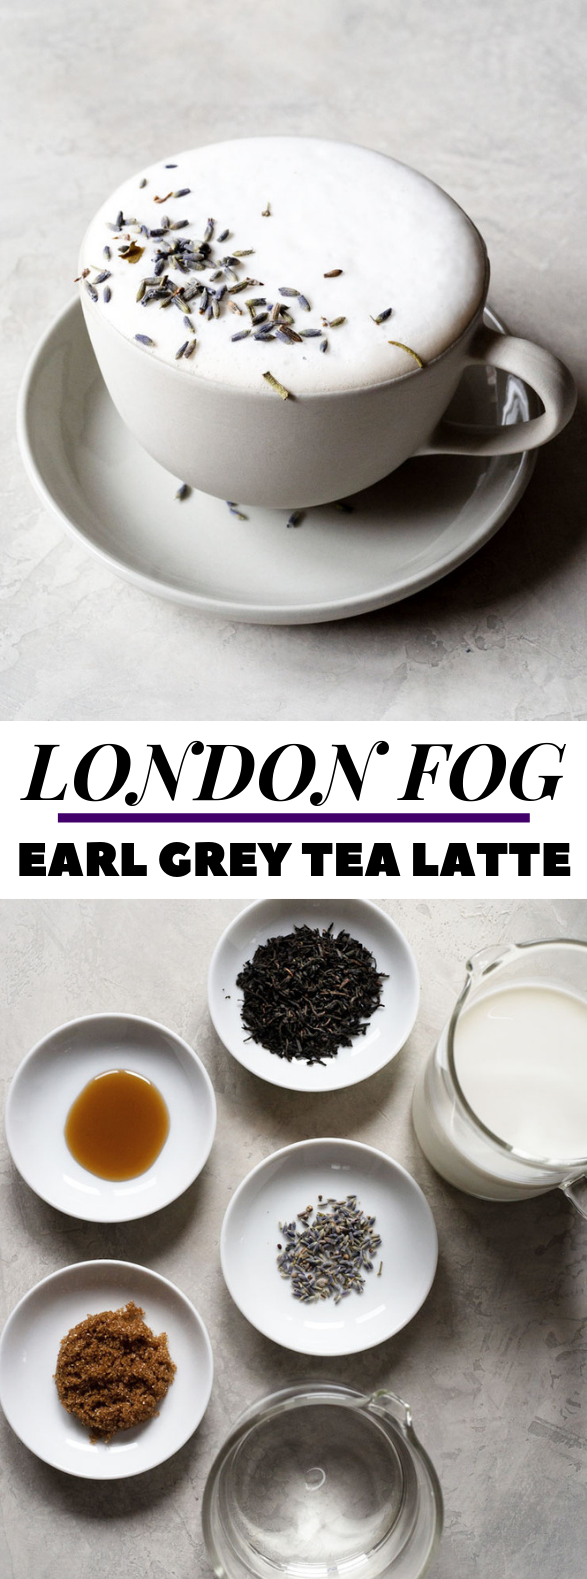 London Fog Drink (Earl Grey Tea Latte) #drinks #tastyrecipe